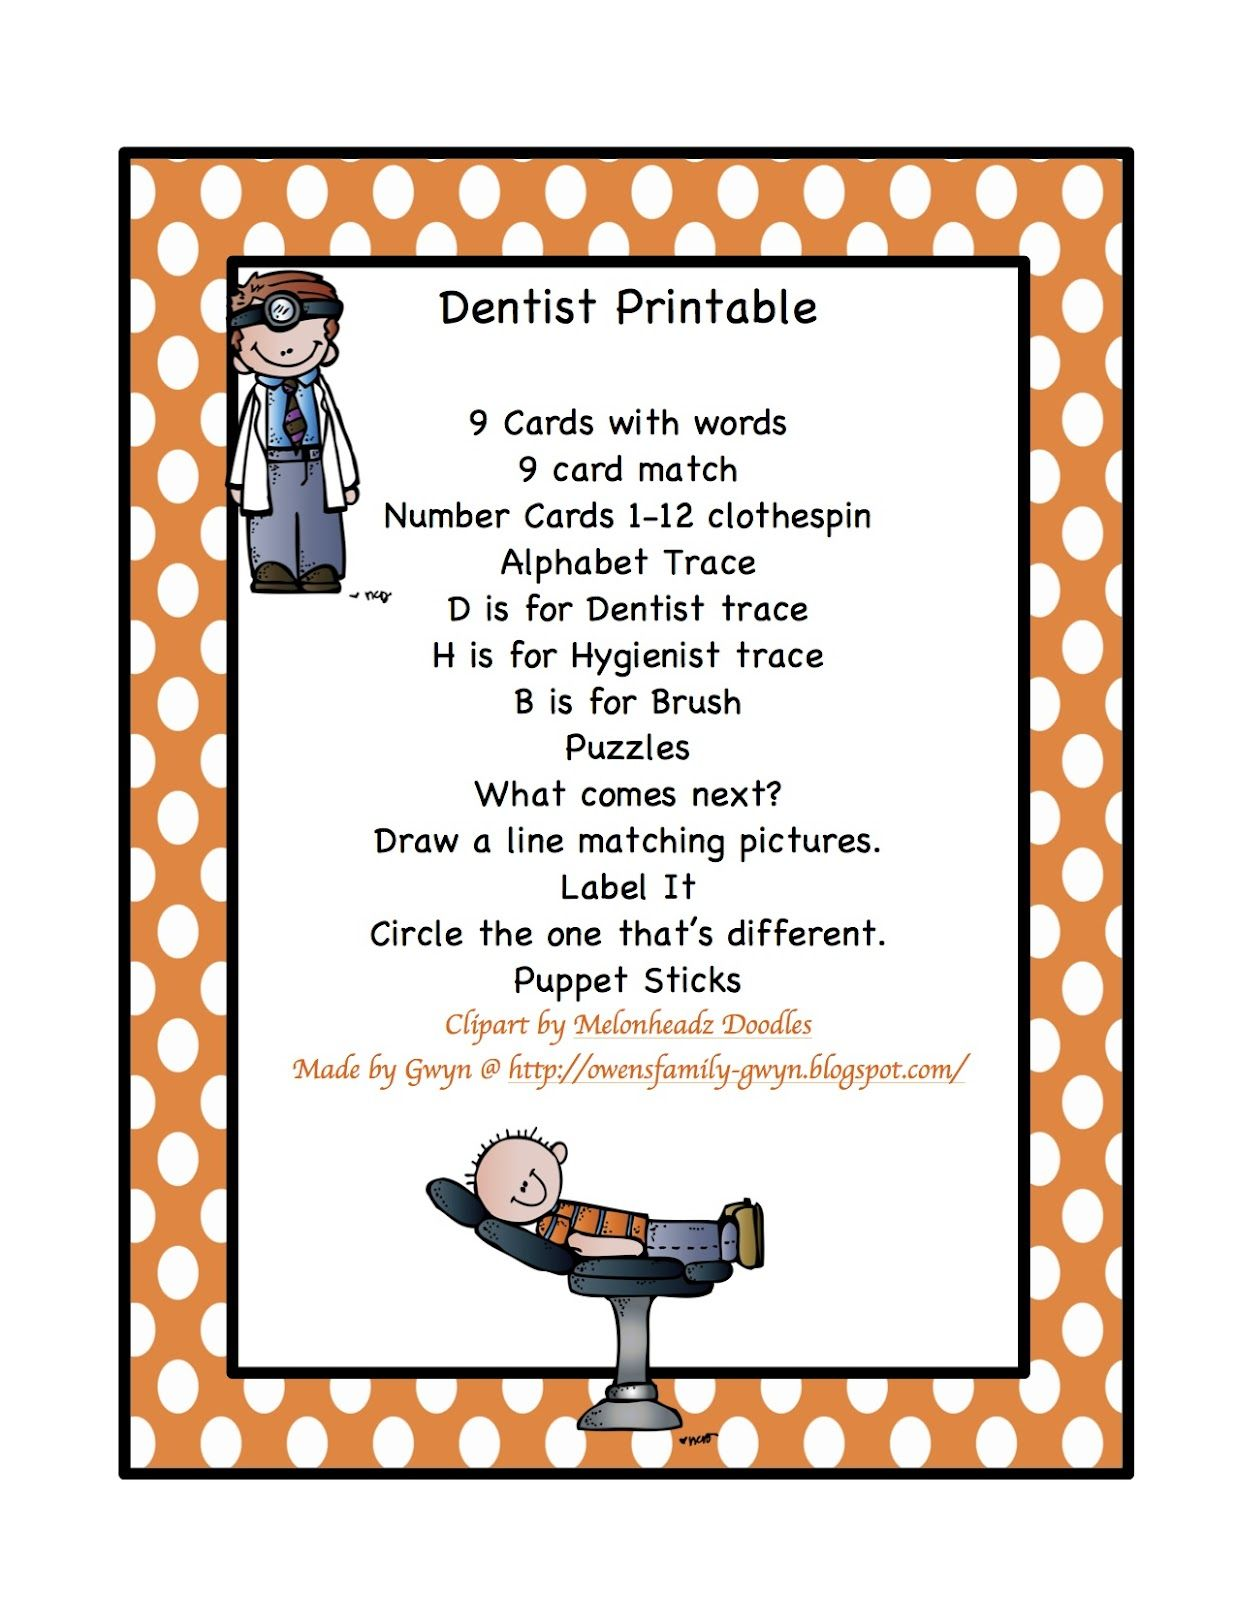 Dentist Printable 16 Page For 1 20